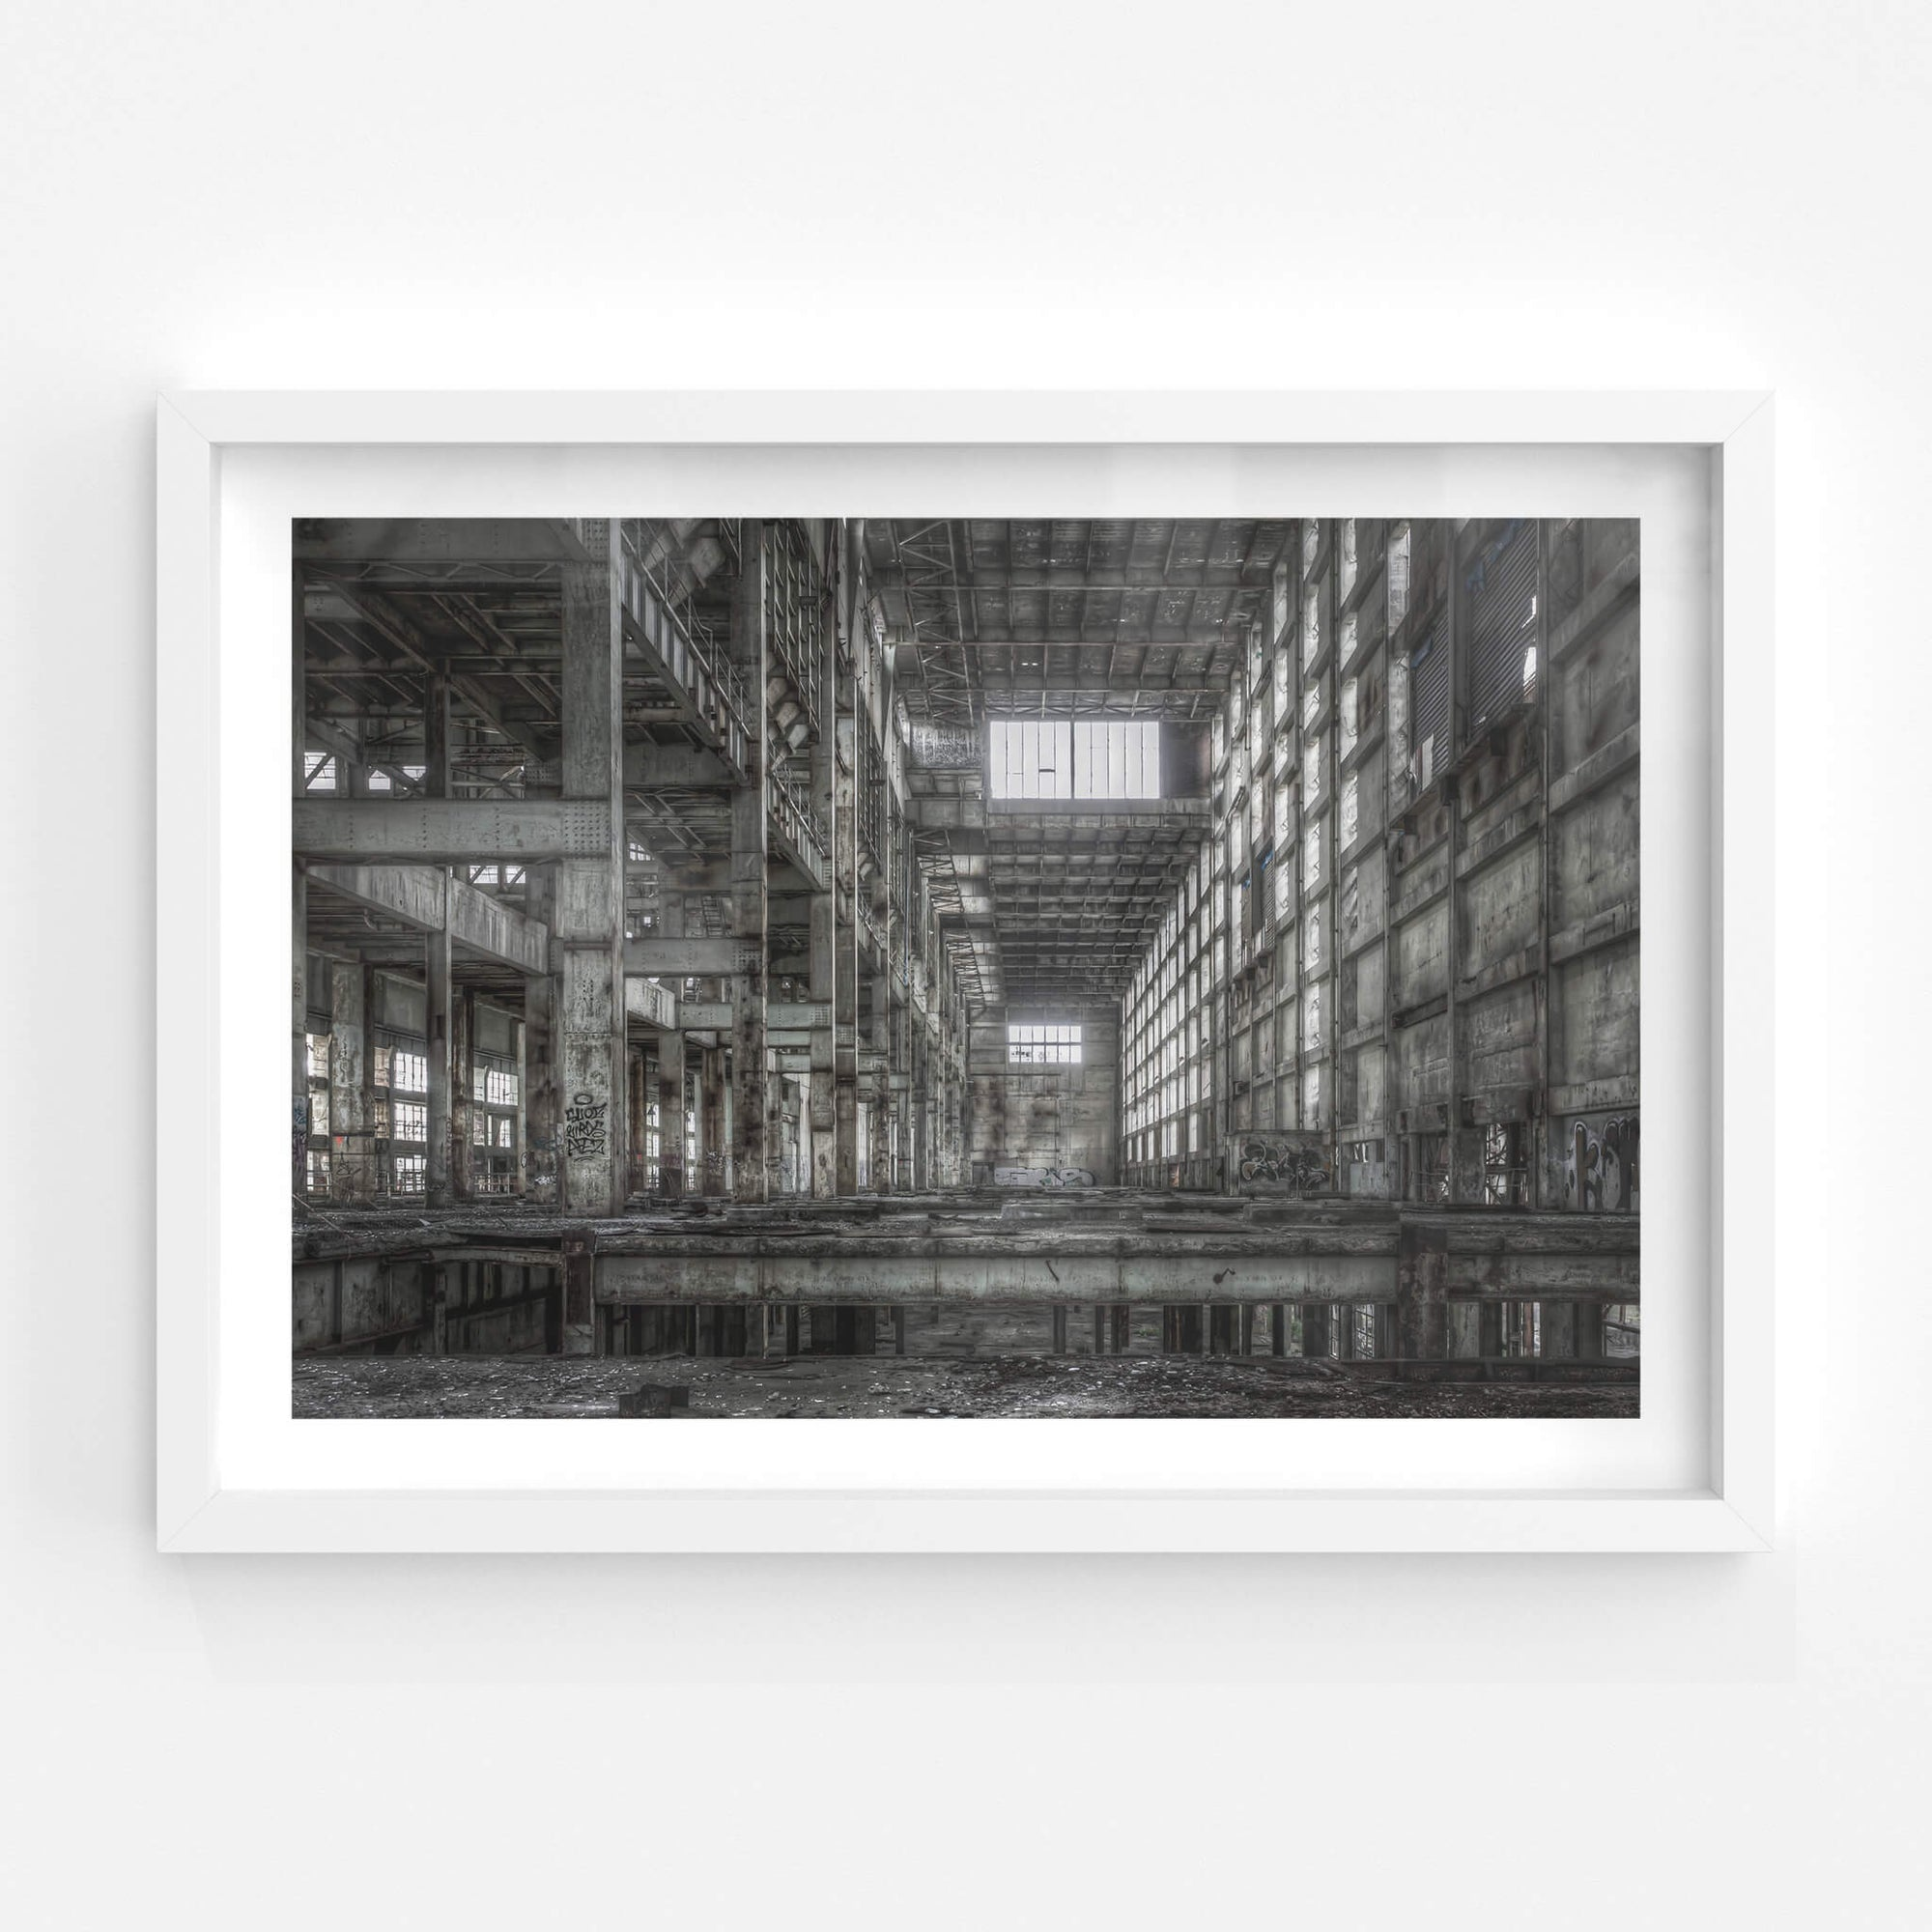 Boiler House B Station Looking Towards A | Wangi Power Station Fine Art Print - Lost Collective Shop